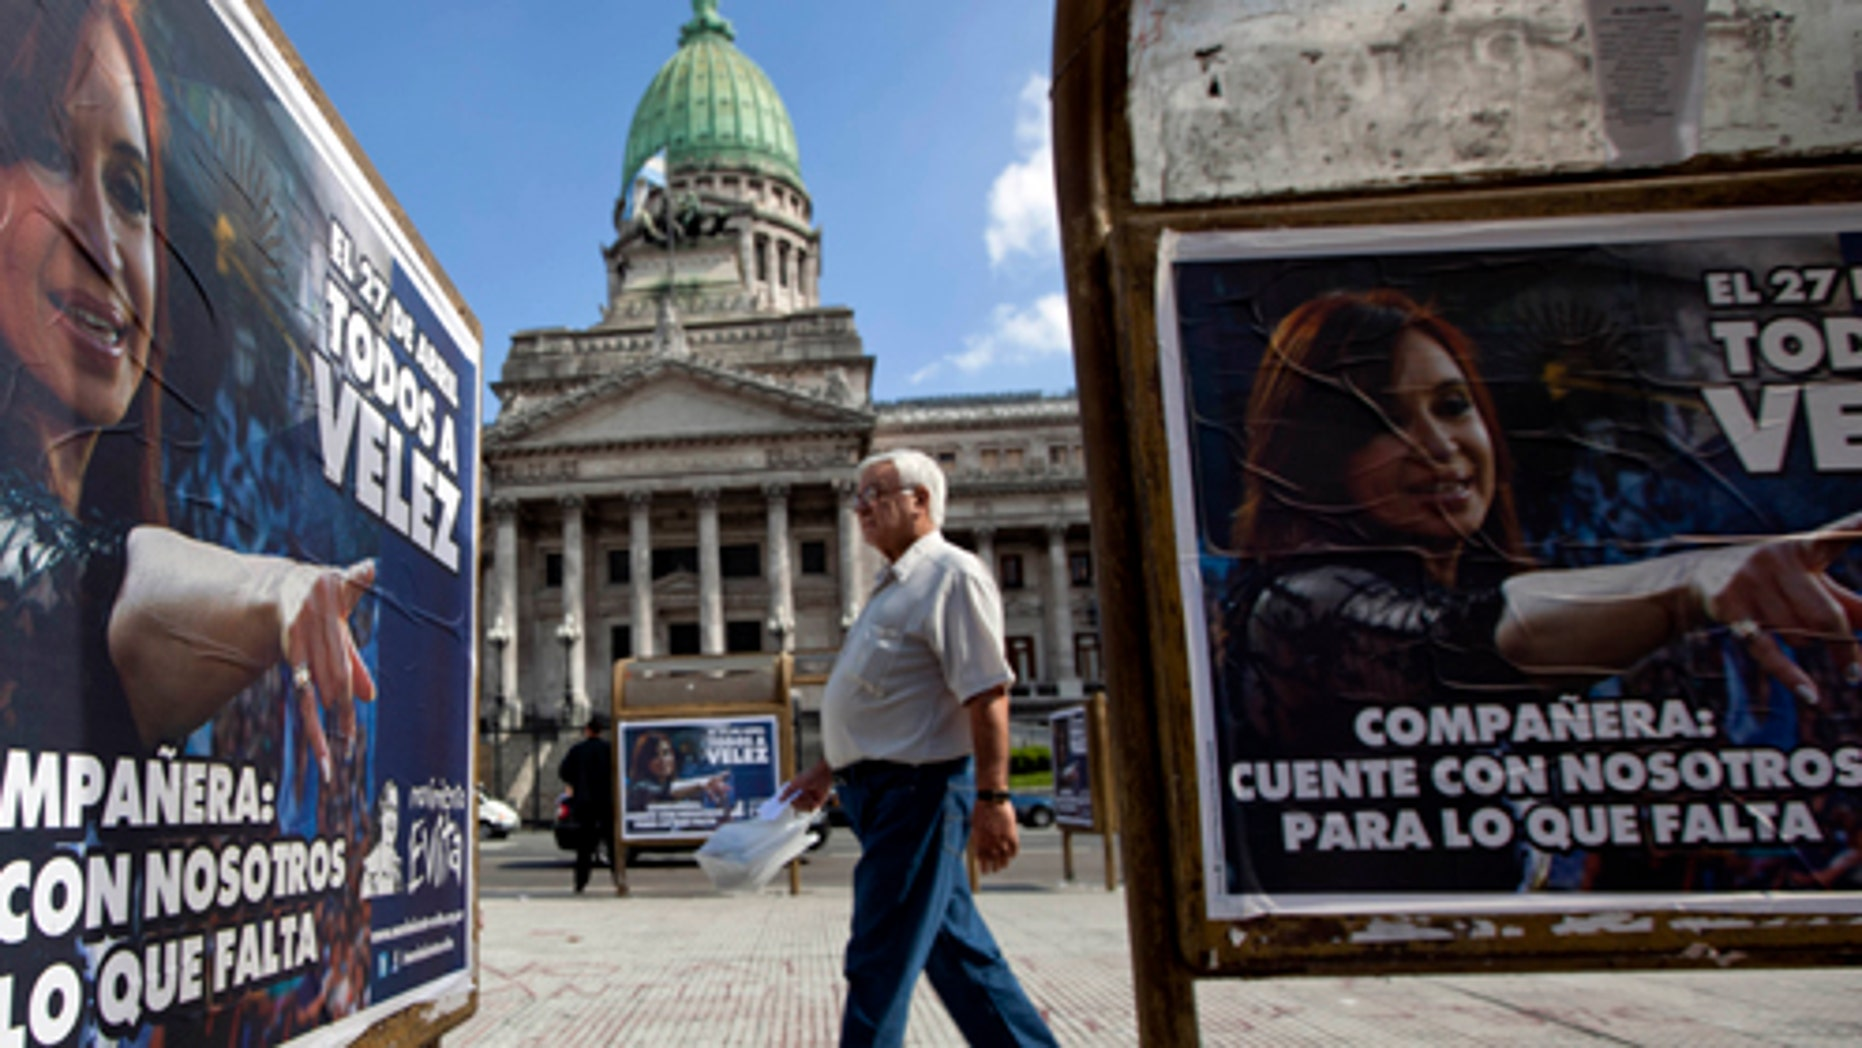 """April 17: A sign of Argentina's President Cristina Fernandez that reads in Spanish """"Companion, count on us for what's left"""" covers a bus stop outside Congress where a bill proposed by Fernandez to gain control of Argentina's energy reserves is being discussed in Buenos Aires. (AP Photo/Natacha Pisarenko)"""